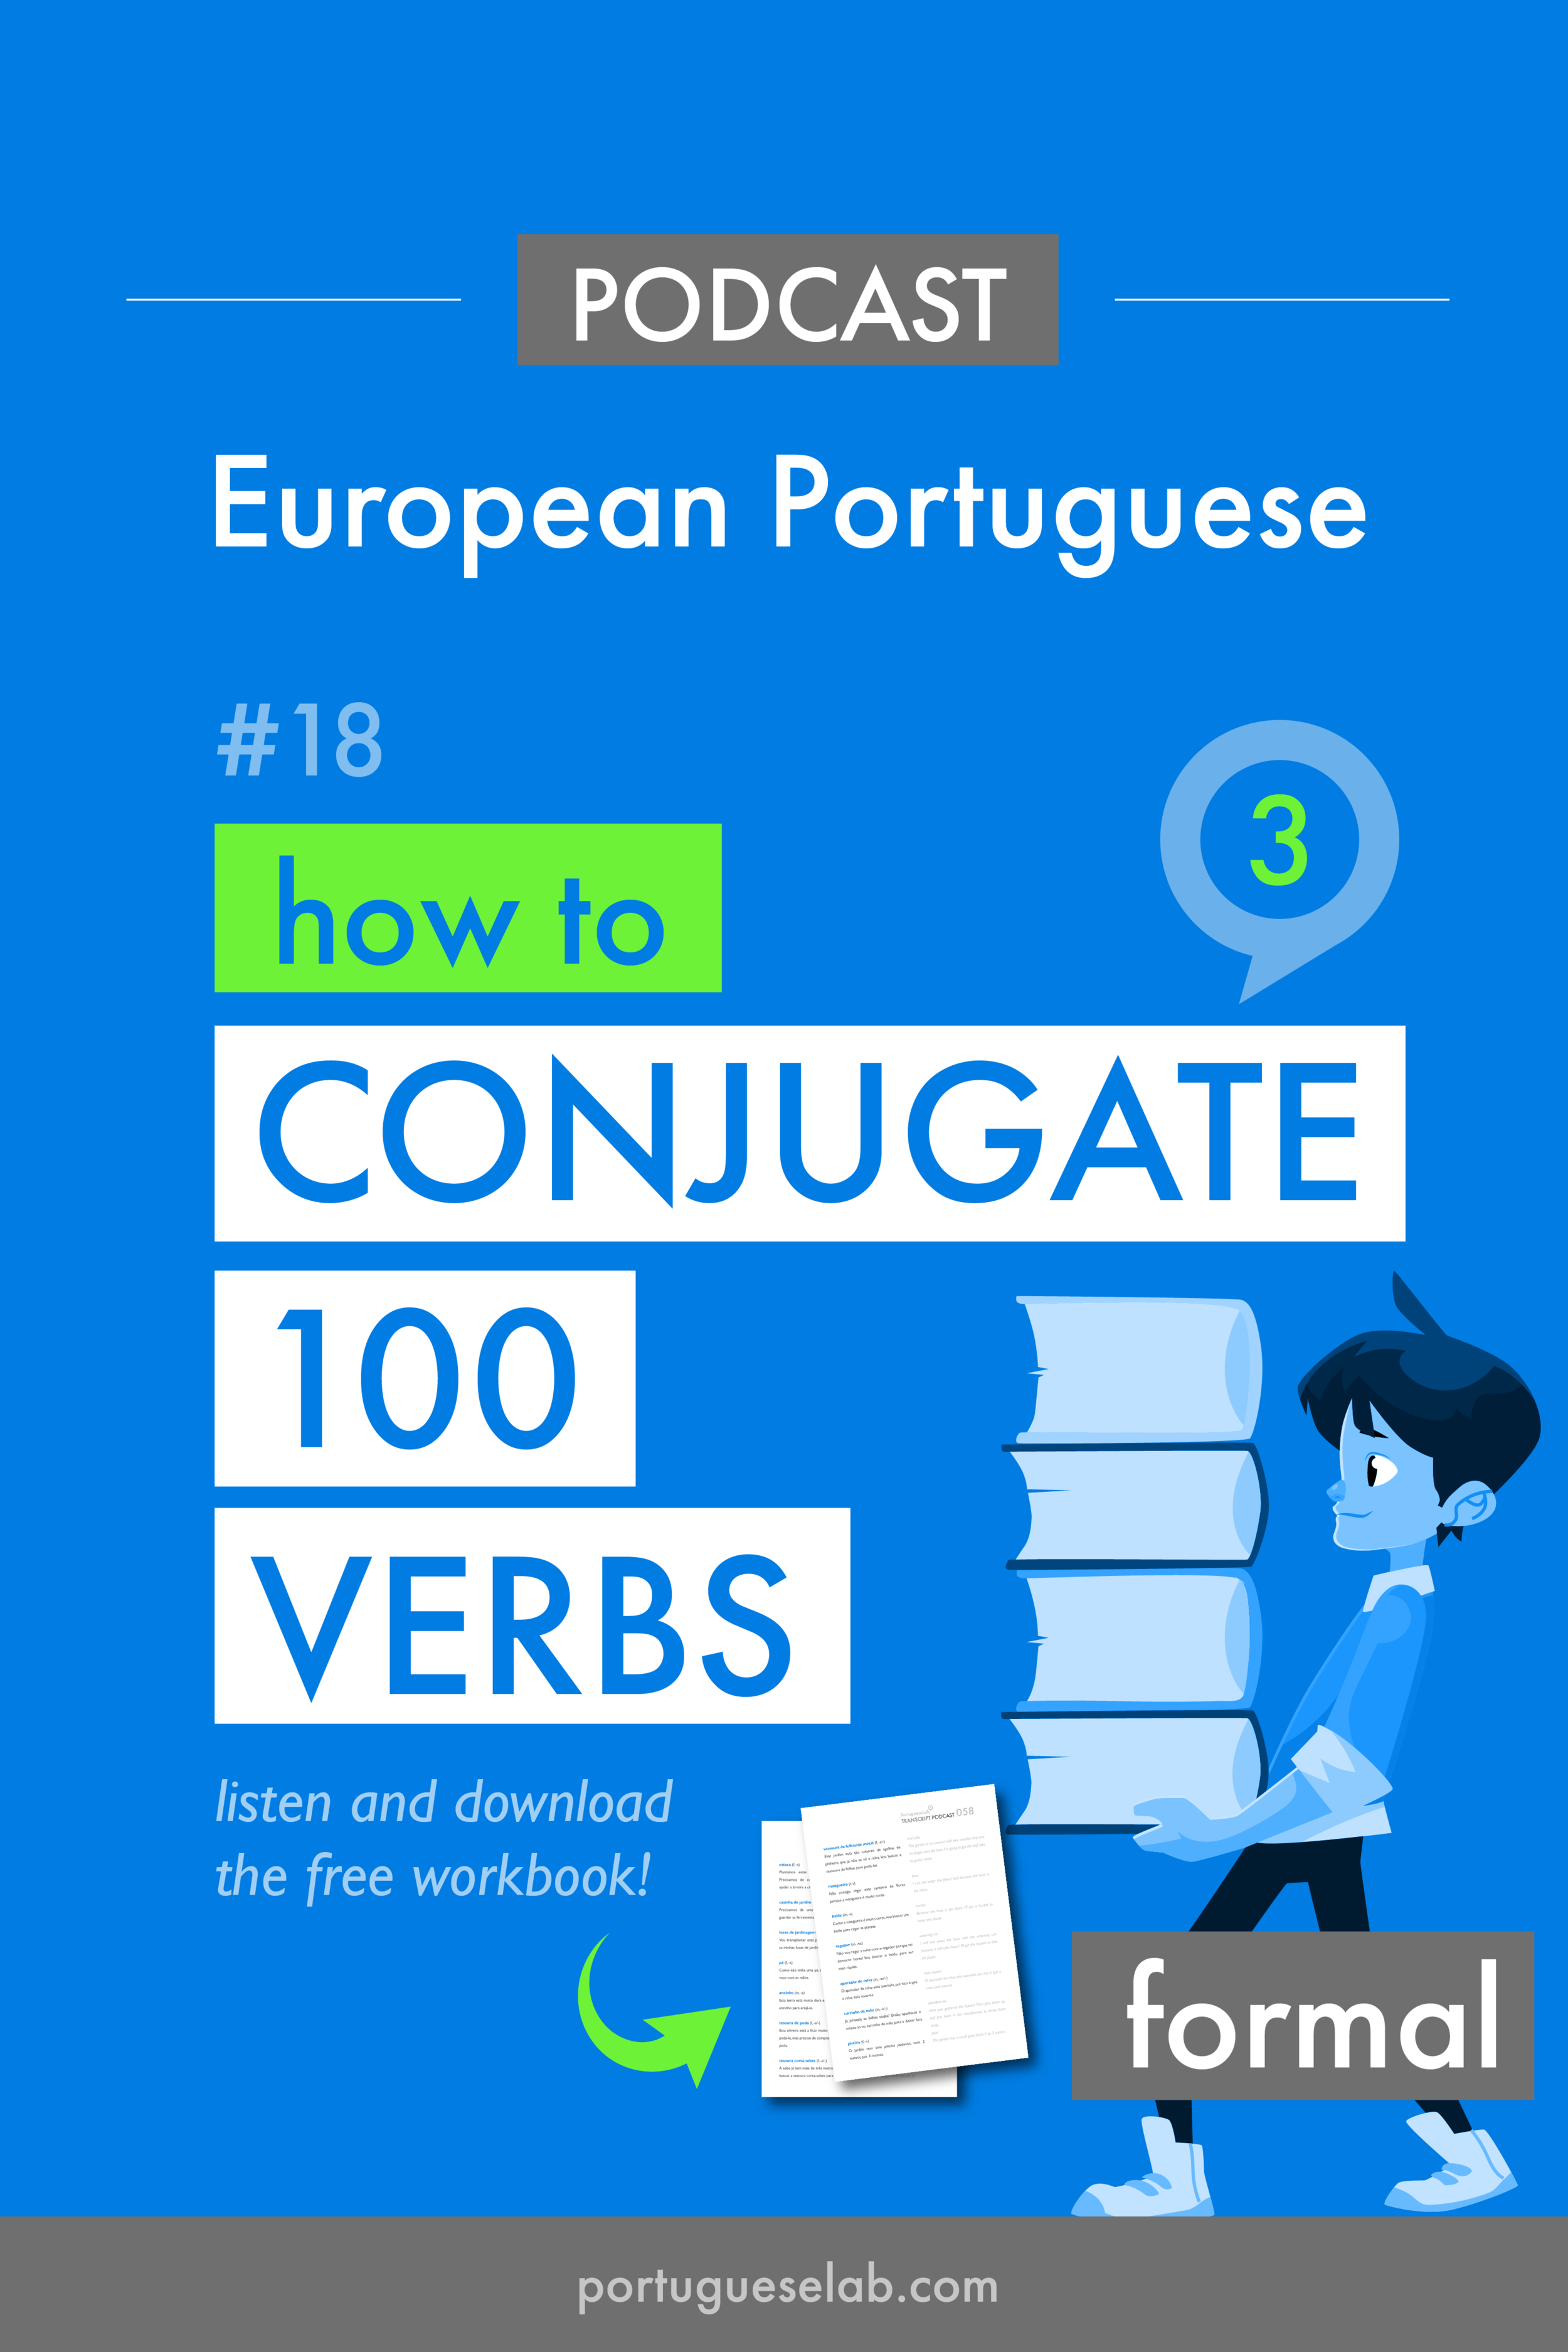 Portuguese Lab Podcast - European Portuguese - 18 - How to conjugate 100 verbs - formal.png